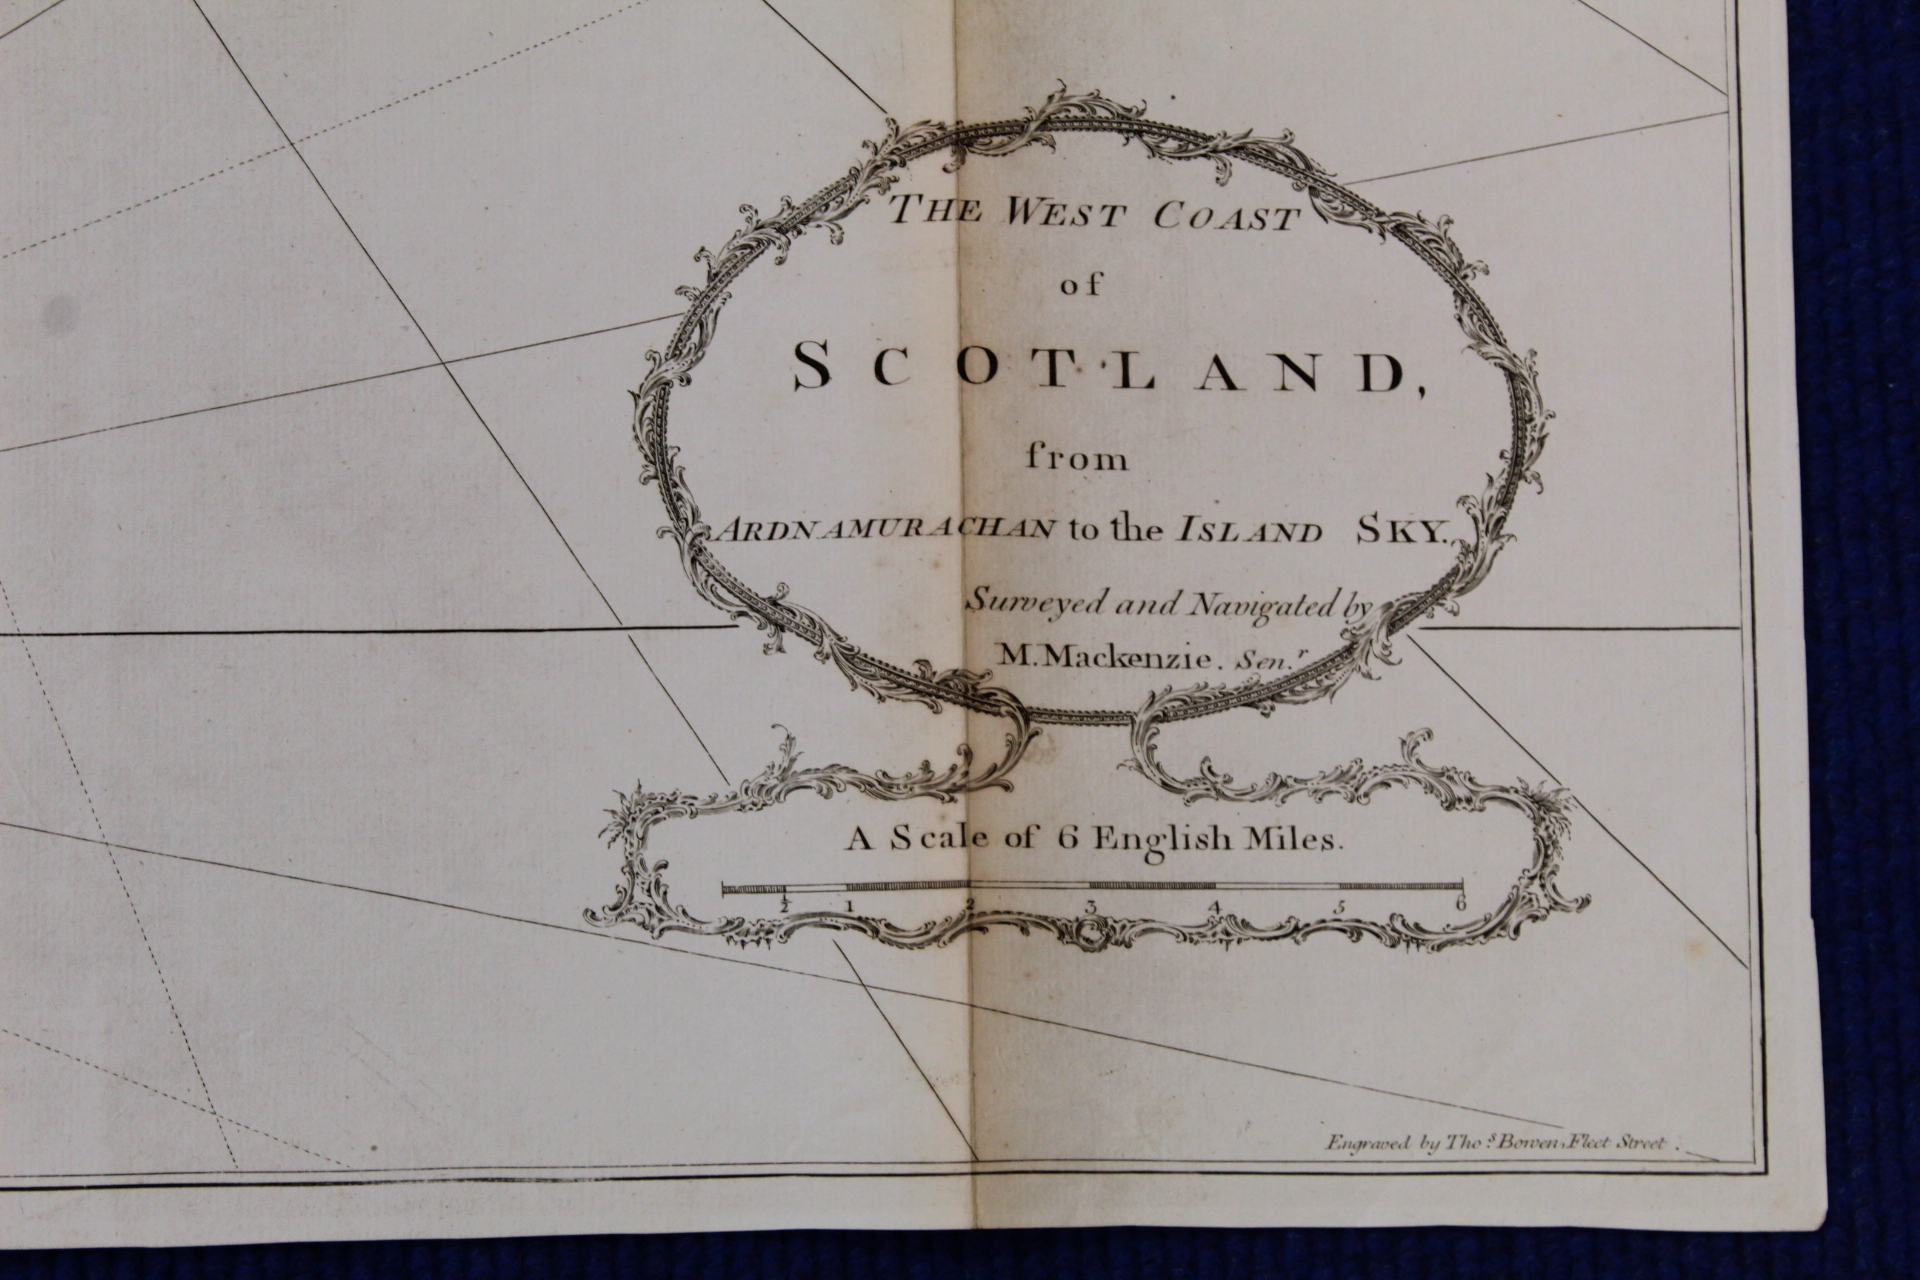 MACKENZIE MURDOCH (SNR.).A General Chart of the West Coast & Western Islands of Scotland from - Image 10 of 66